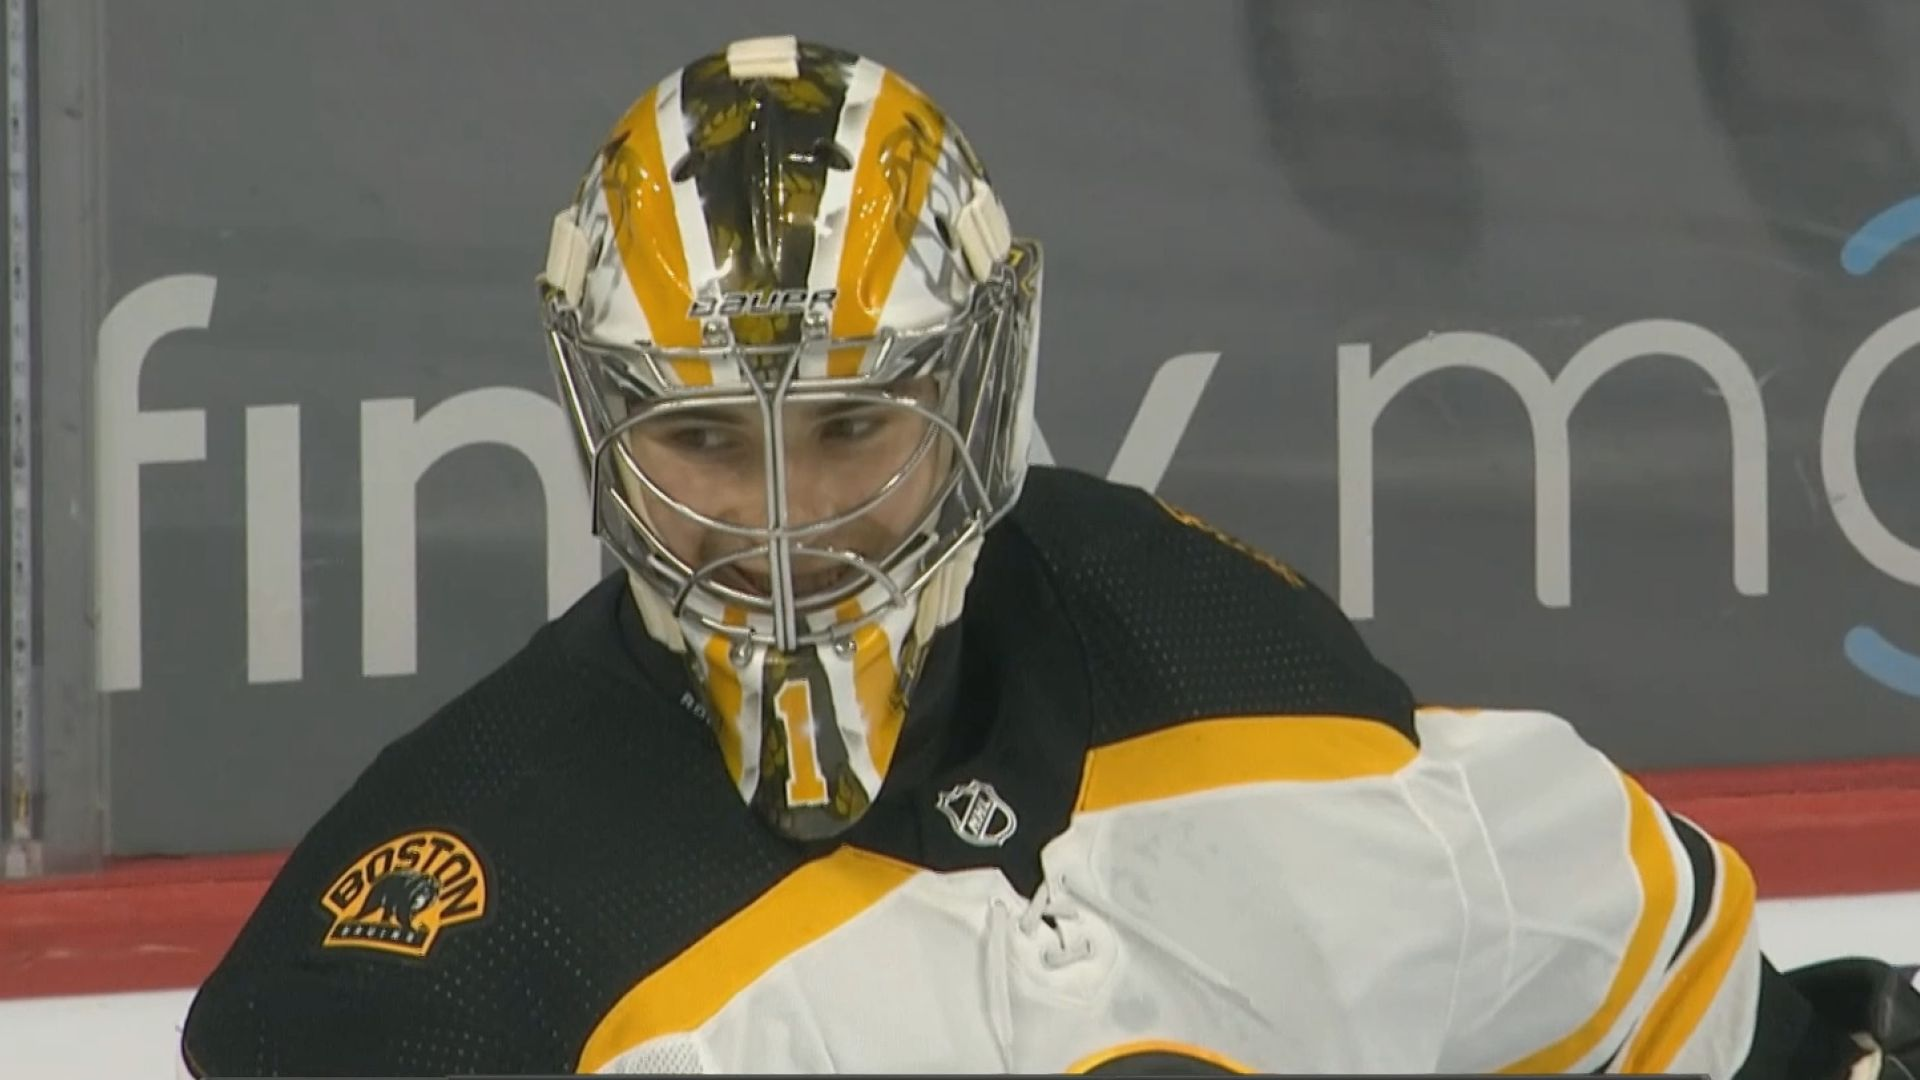 Goalie Schedule For Bruins Will Be 'Month-To-Month, Performance Driven'